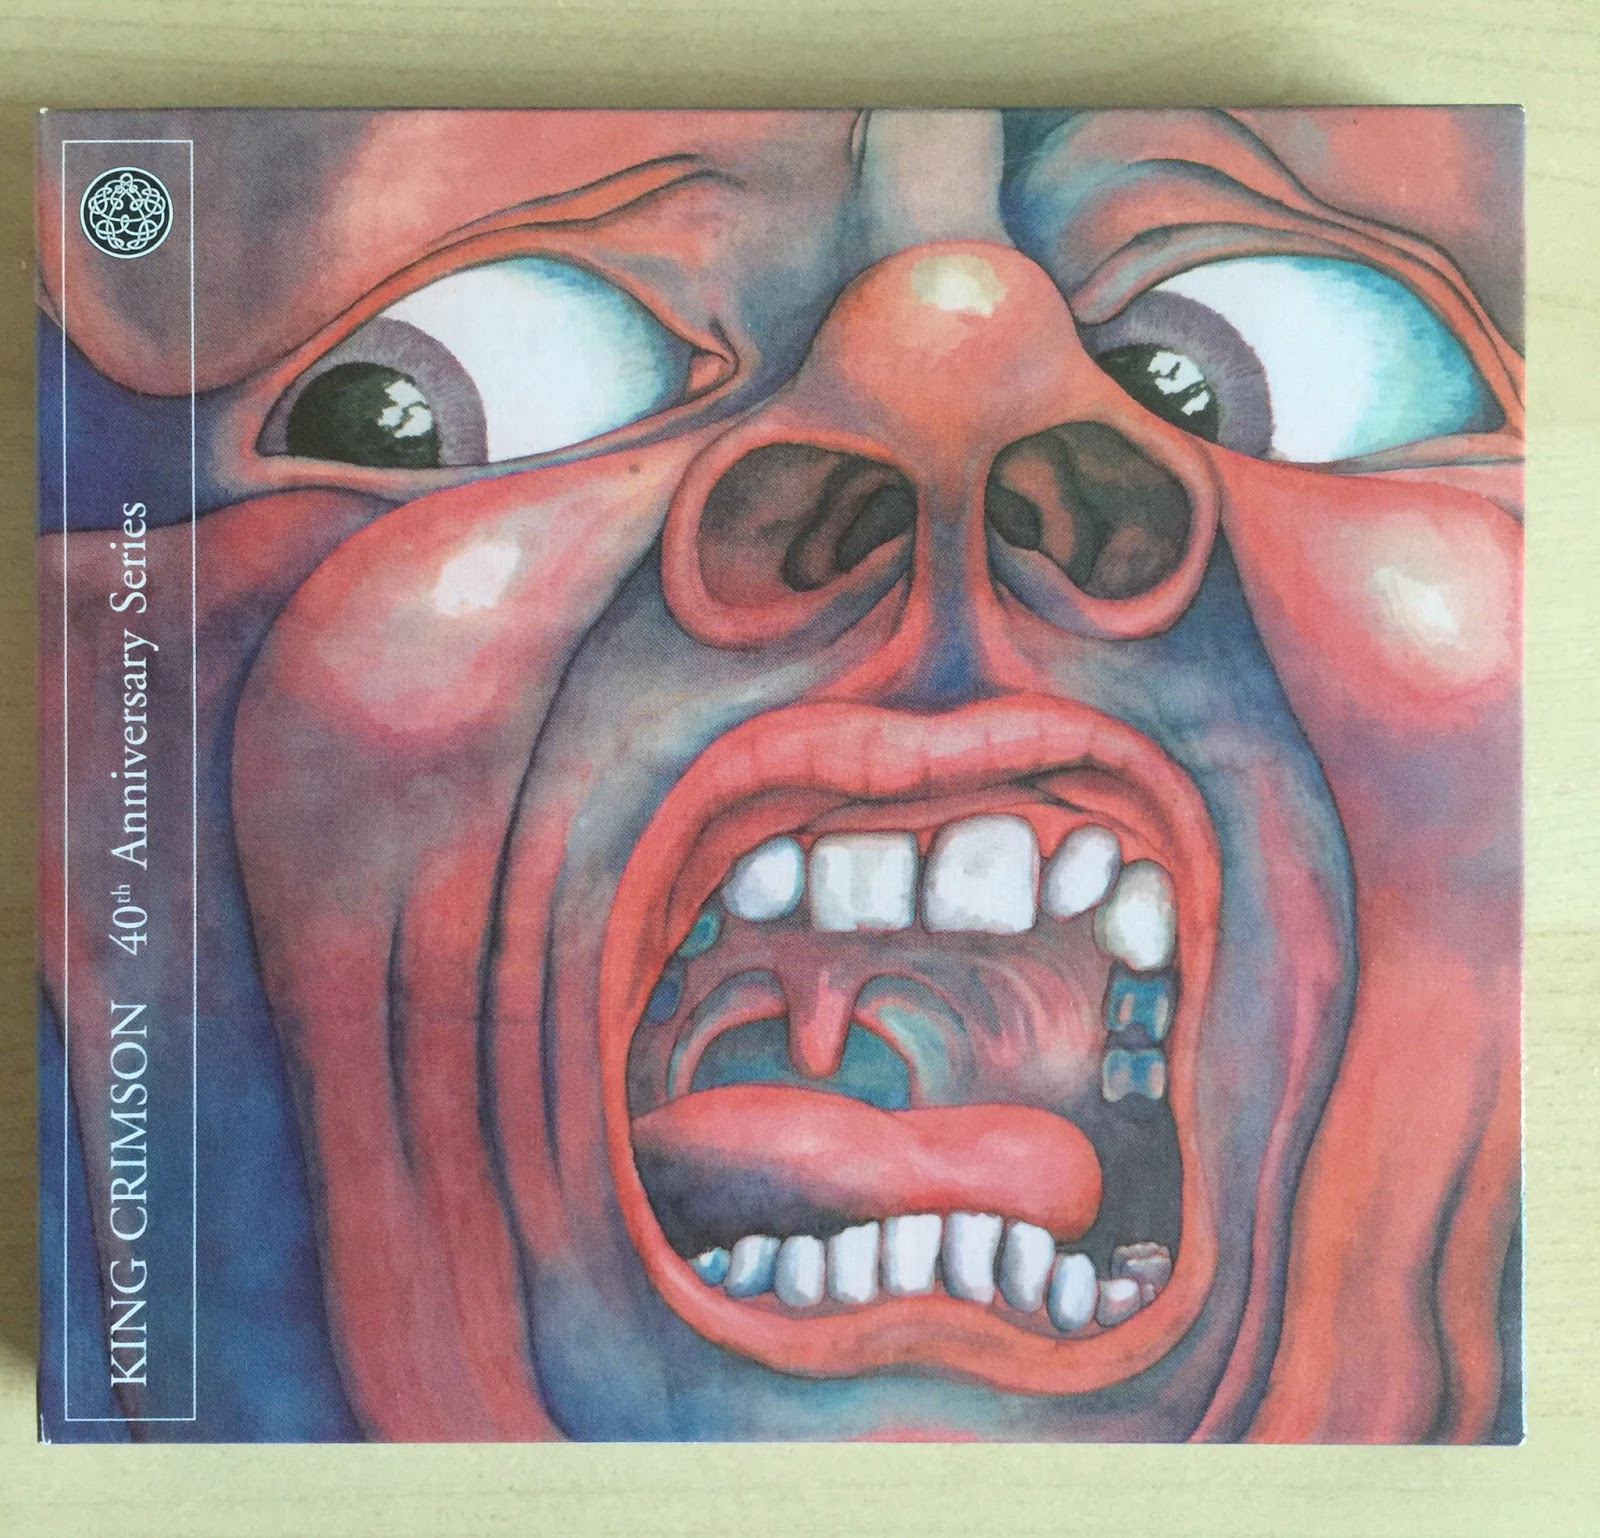 Sounds Good Looks In The Court Of Crimson King 40th Dr Kevin Soft Ampamp Comfortable Men Slip On 9307 Grey Anniversary Series By October 2009 Panegyric Cd And Dvd A Reissue Robert Fripp Steve Wilson